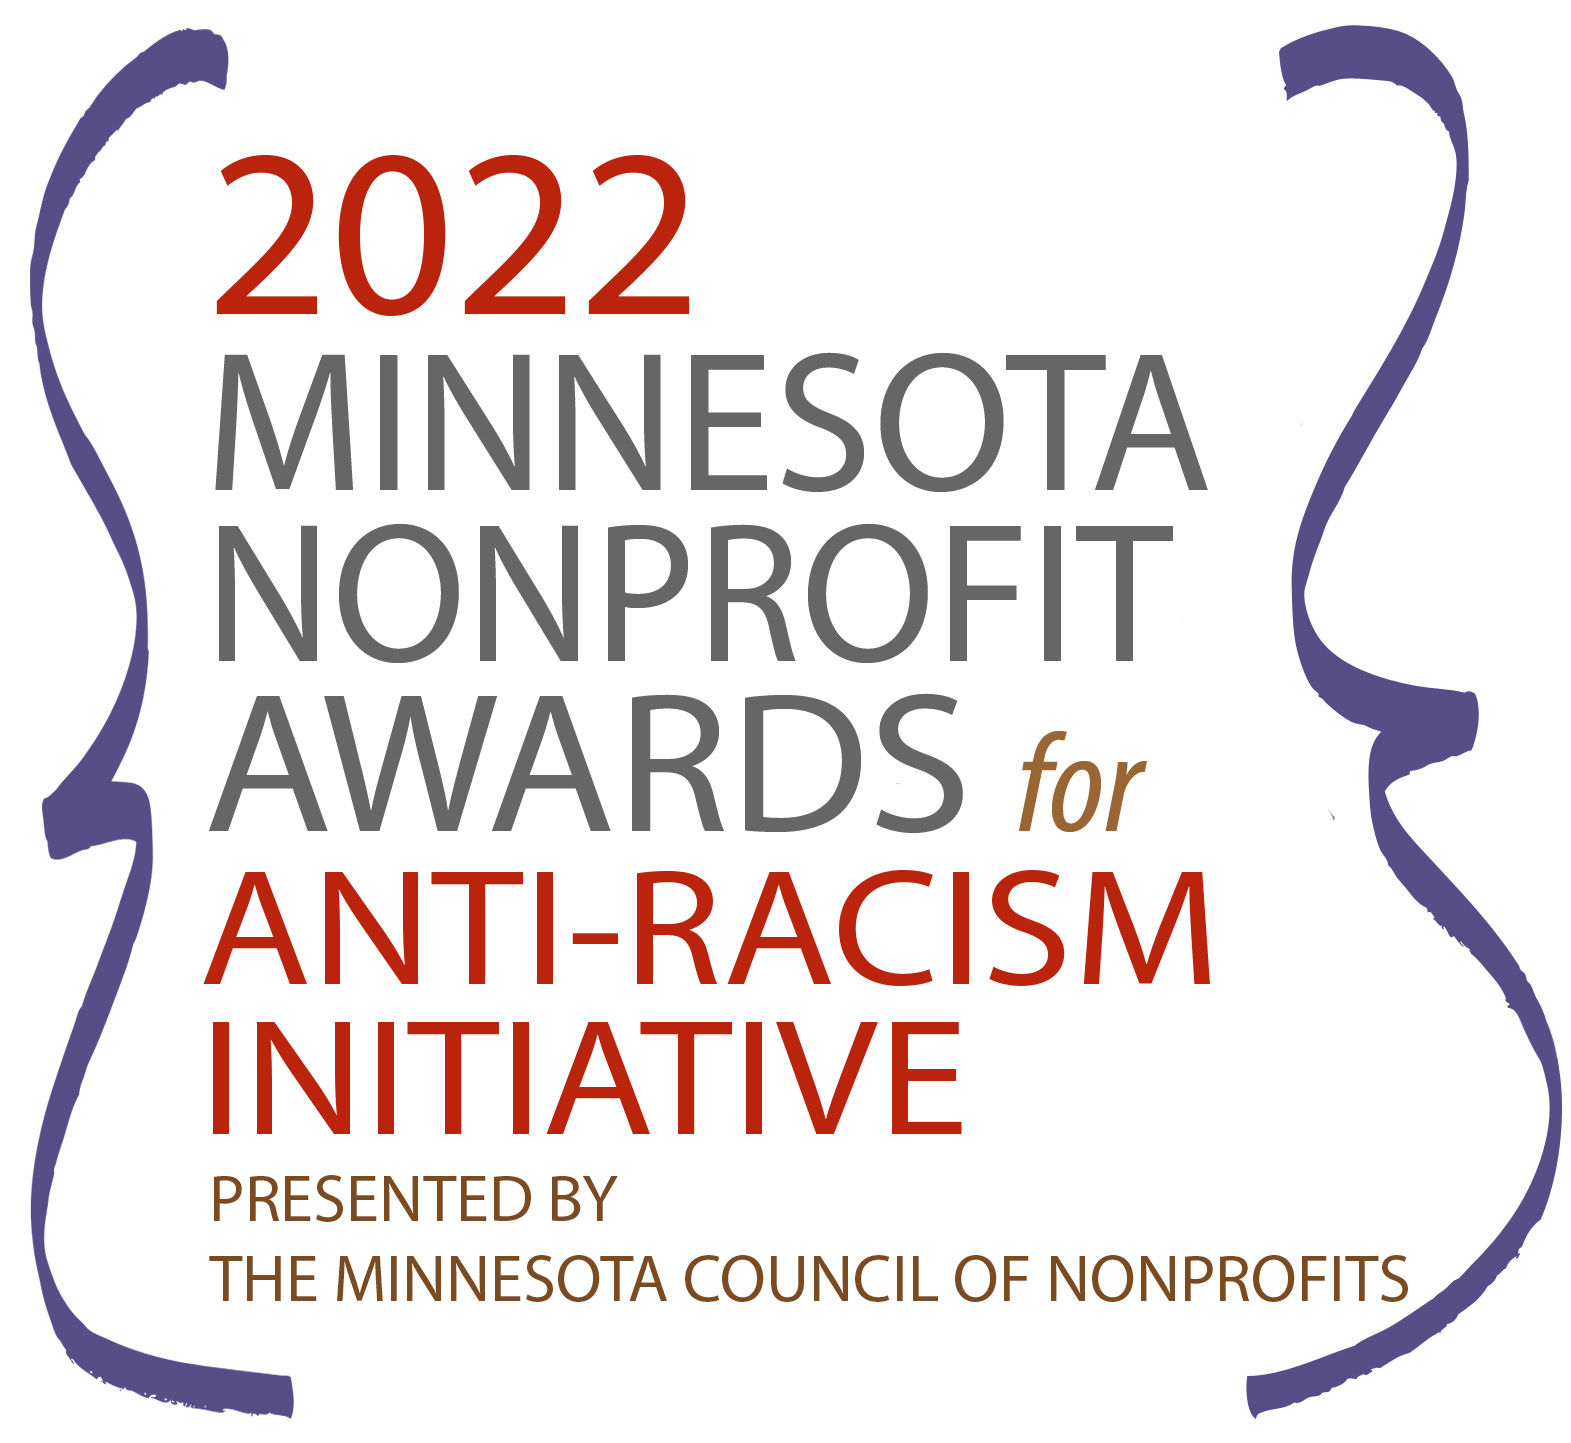 Anti-Racism Initiative Award